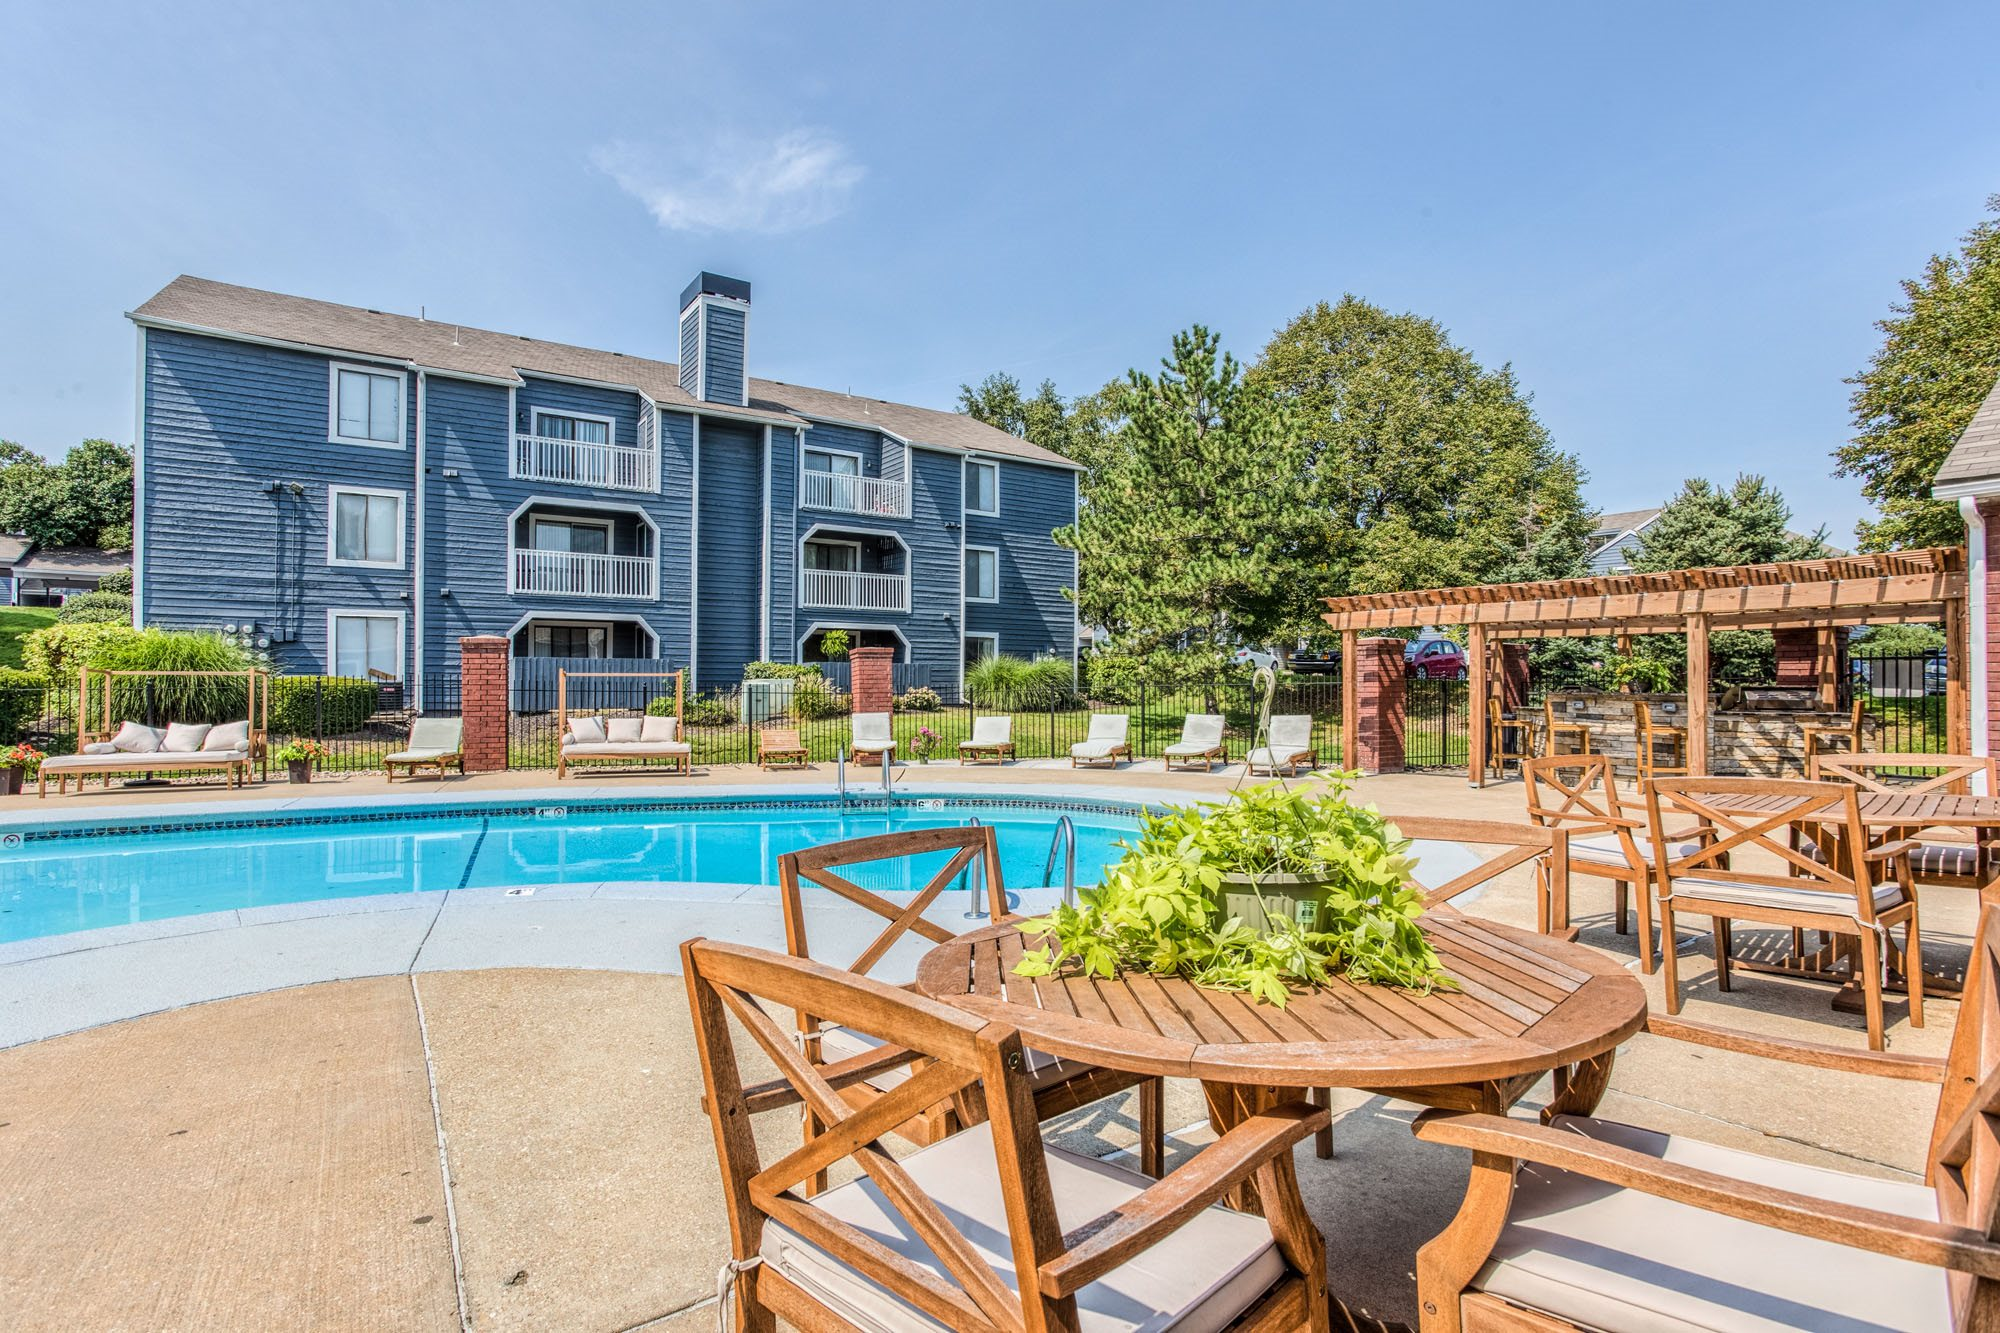 Resort-Style Pool and Deck at Perry 81 Apartments in Overland Park, Kansas